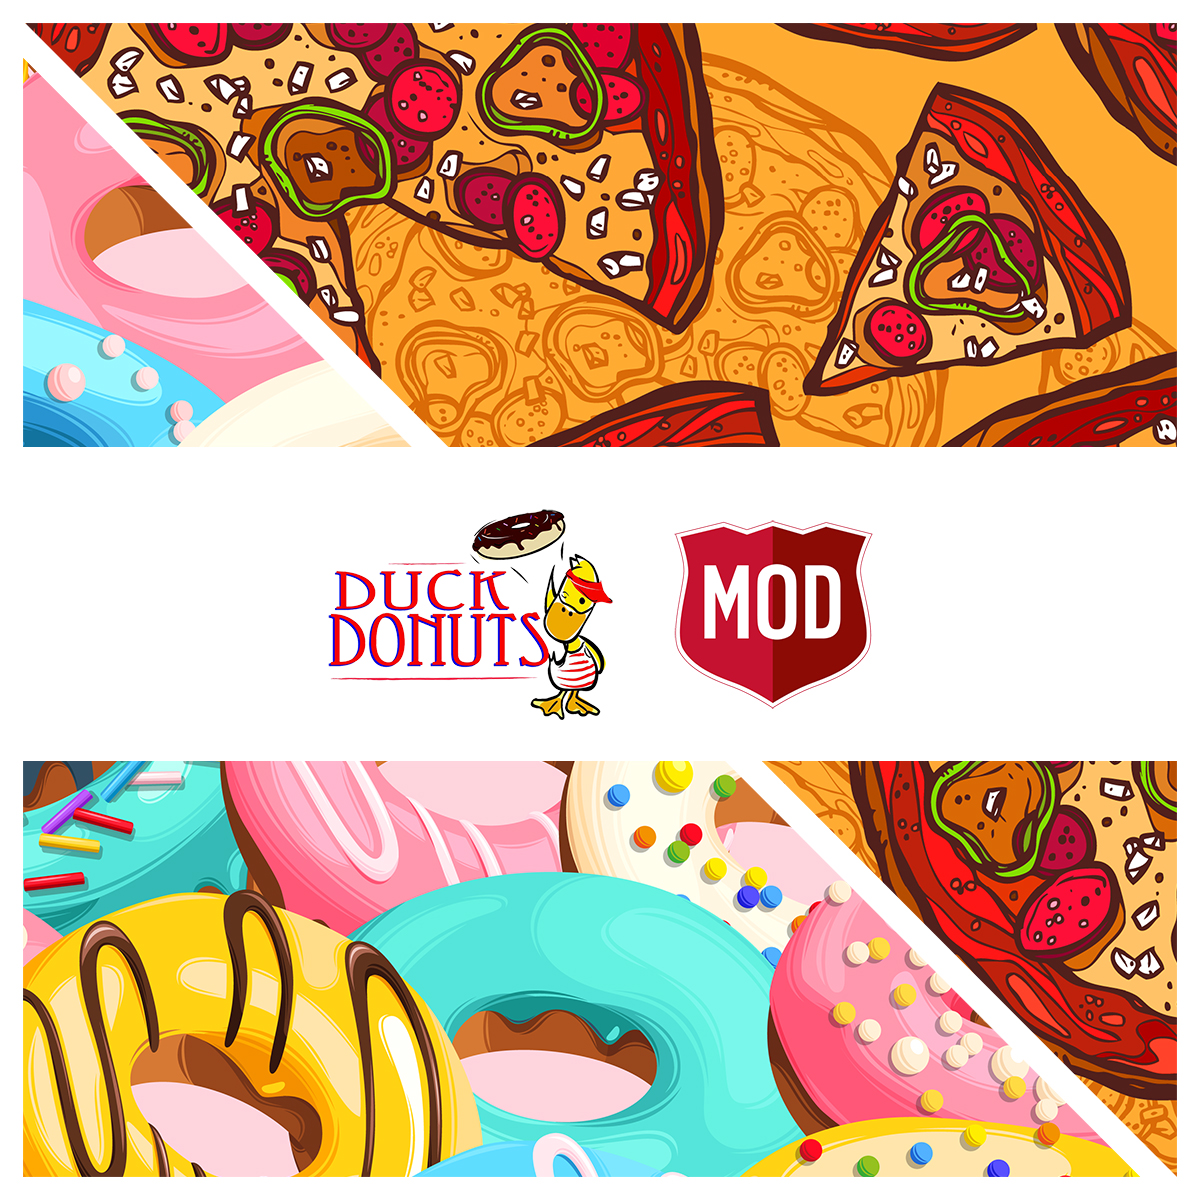 Duck Donuts & MOD Pizza